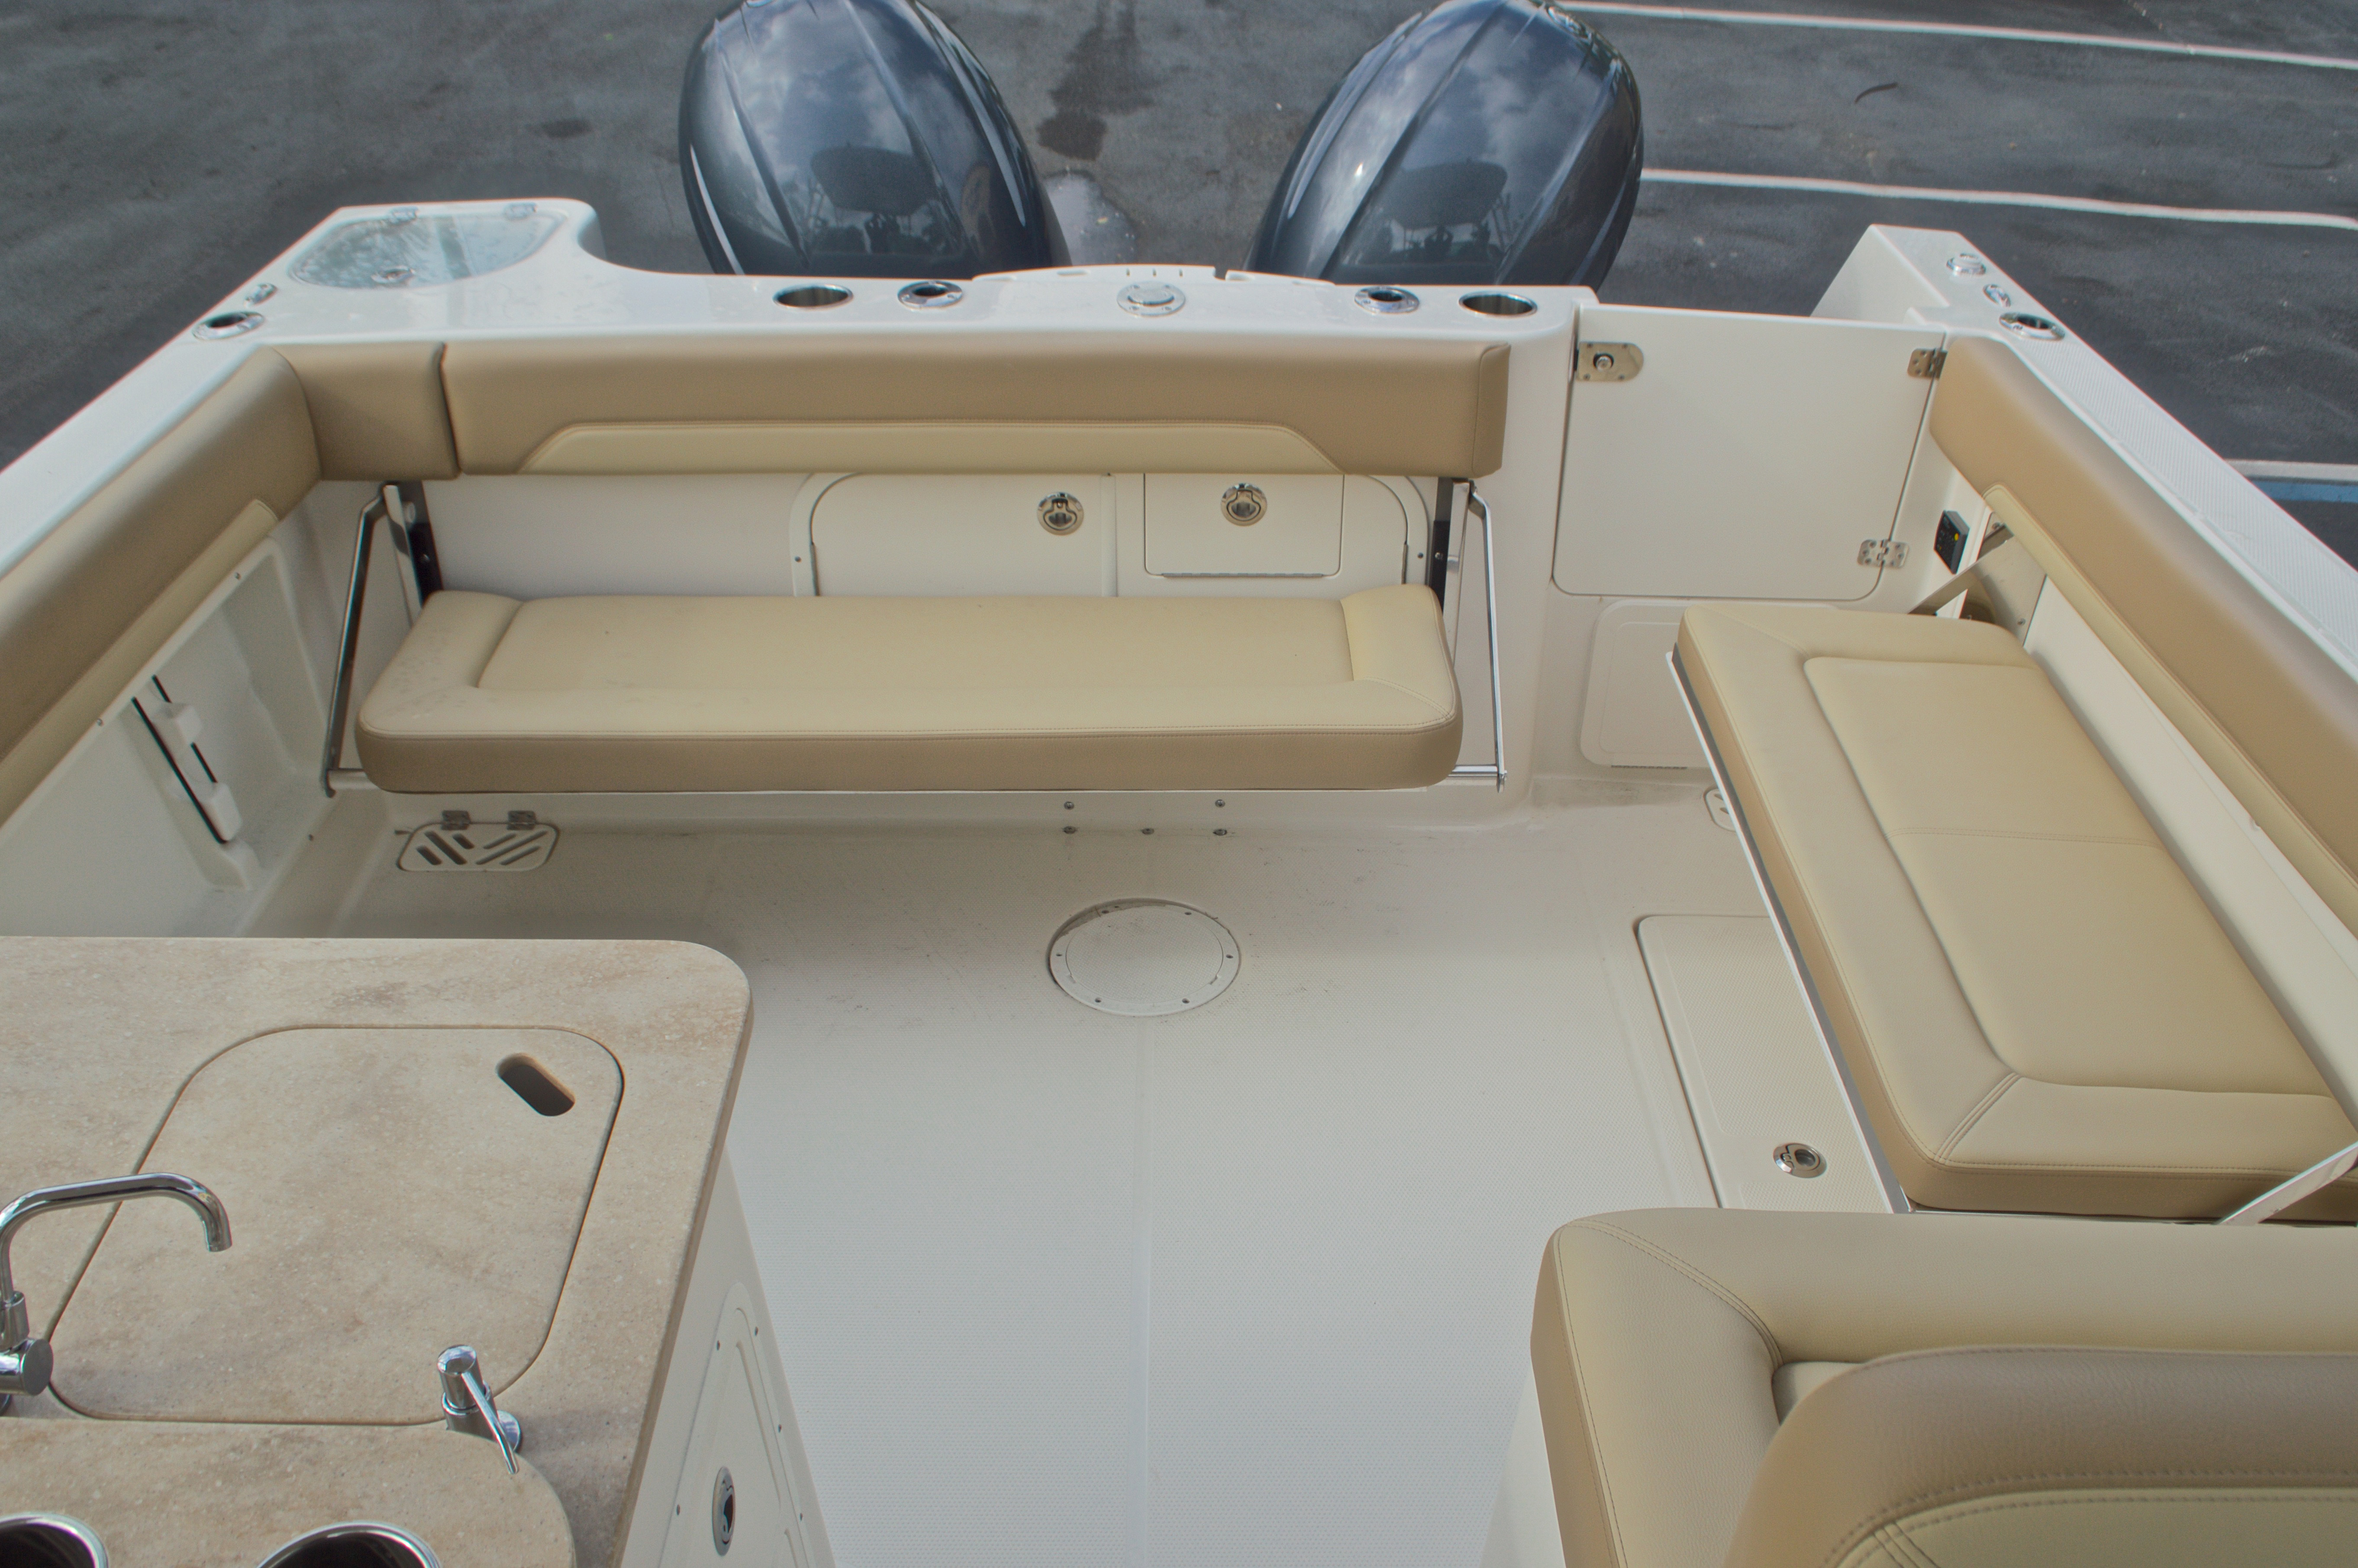 Thumbnail 12 for New 2017 Sailfish 275 Dual Console boat for sale in West Palm Beach, FL